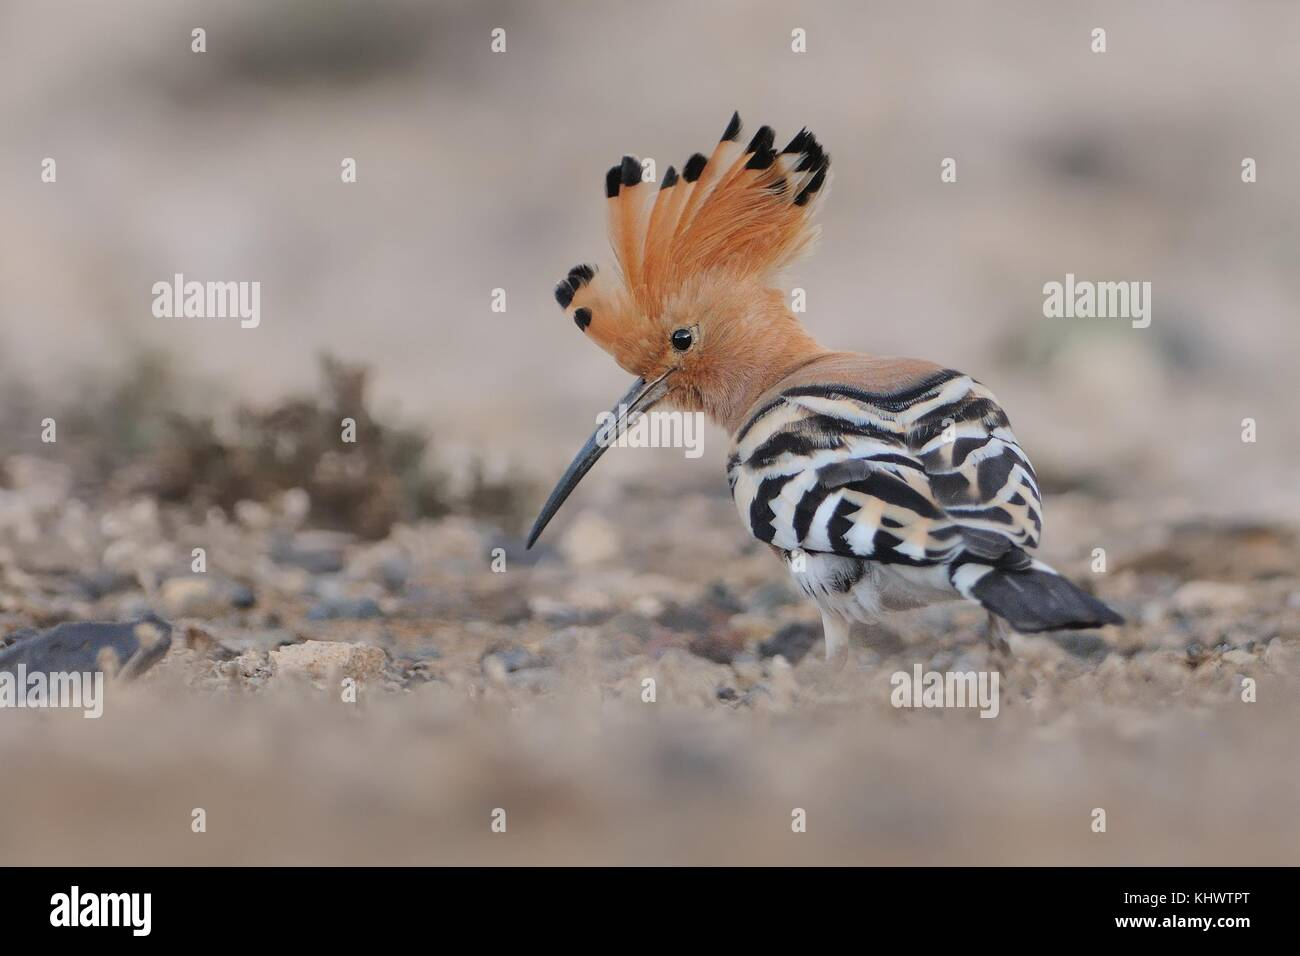 Eurasian Hoopoe - Upupa epops sitting on the ground and feeding - Stock Image